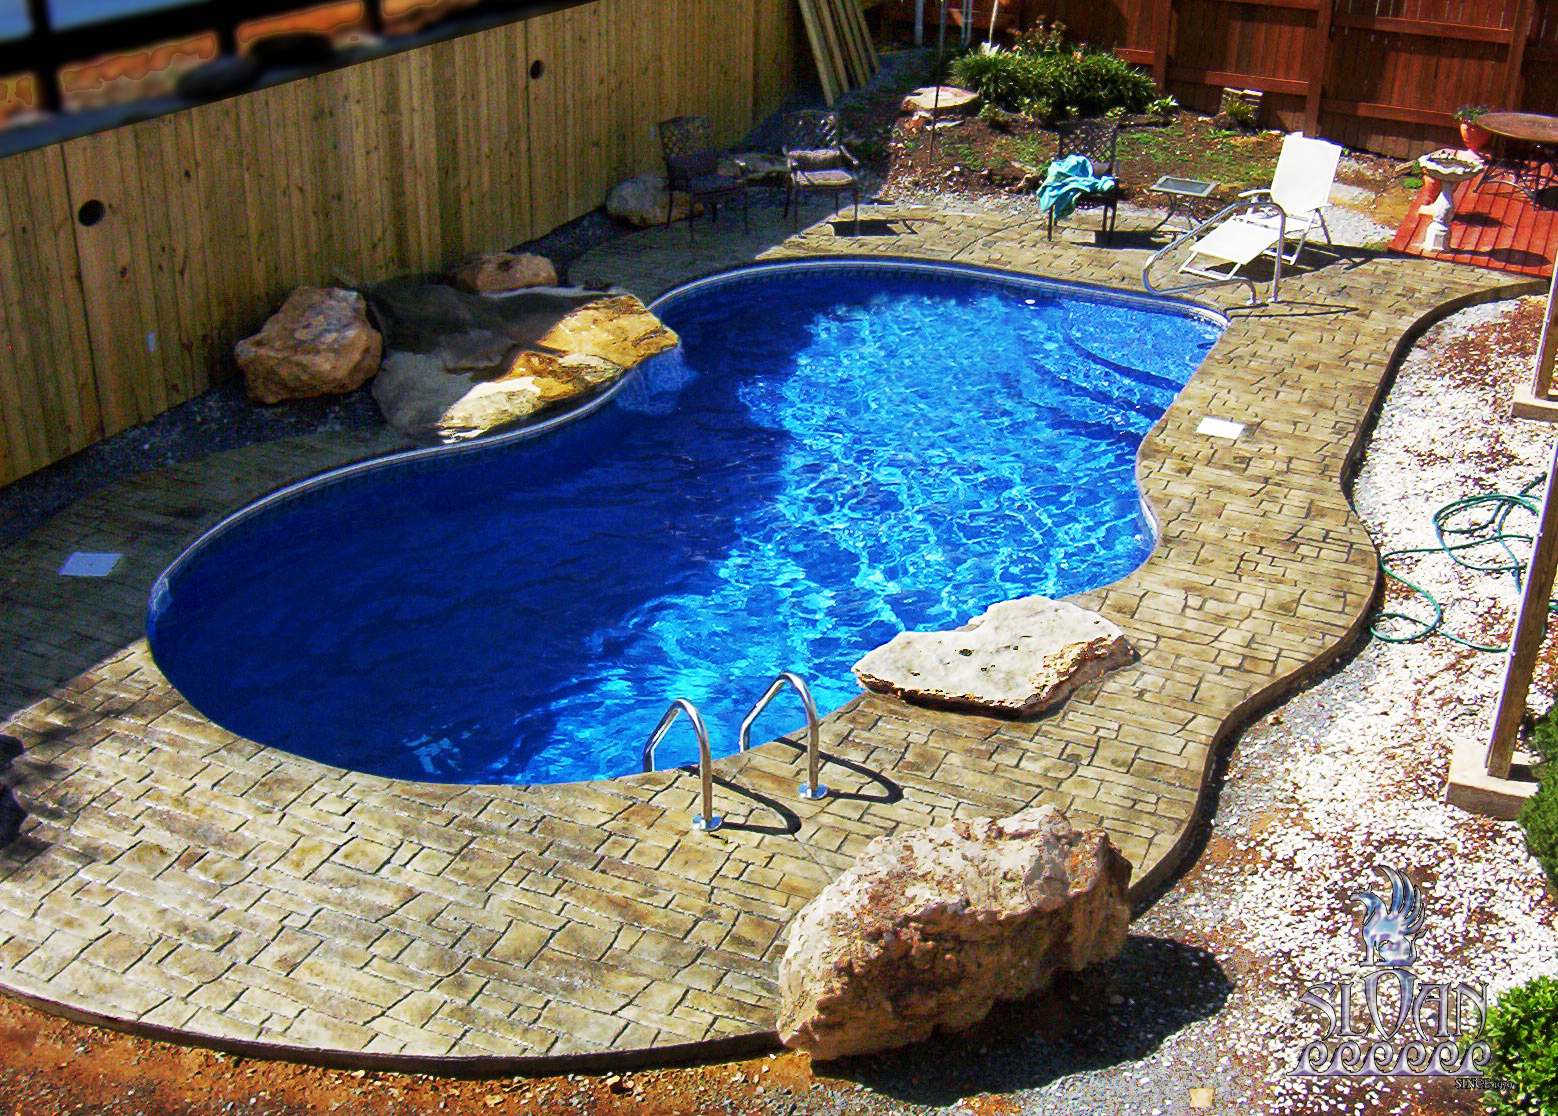 Cape concrete designs stamped concrete for Swimming pool room decor